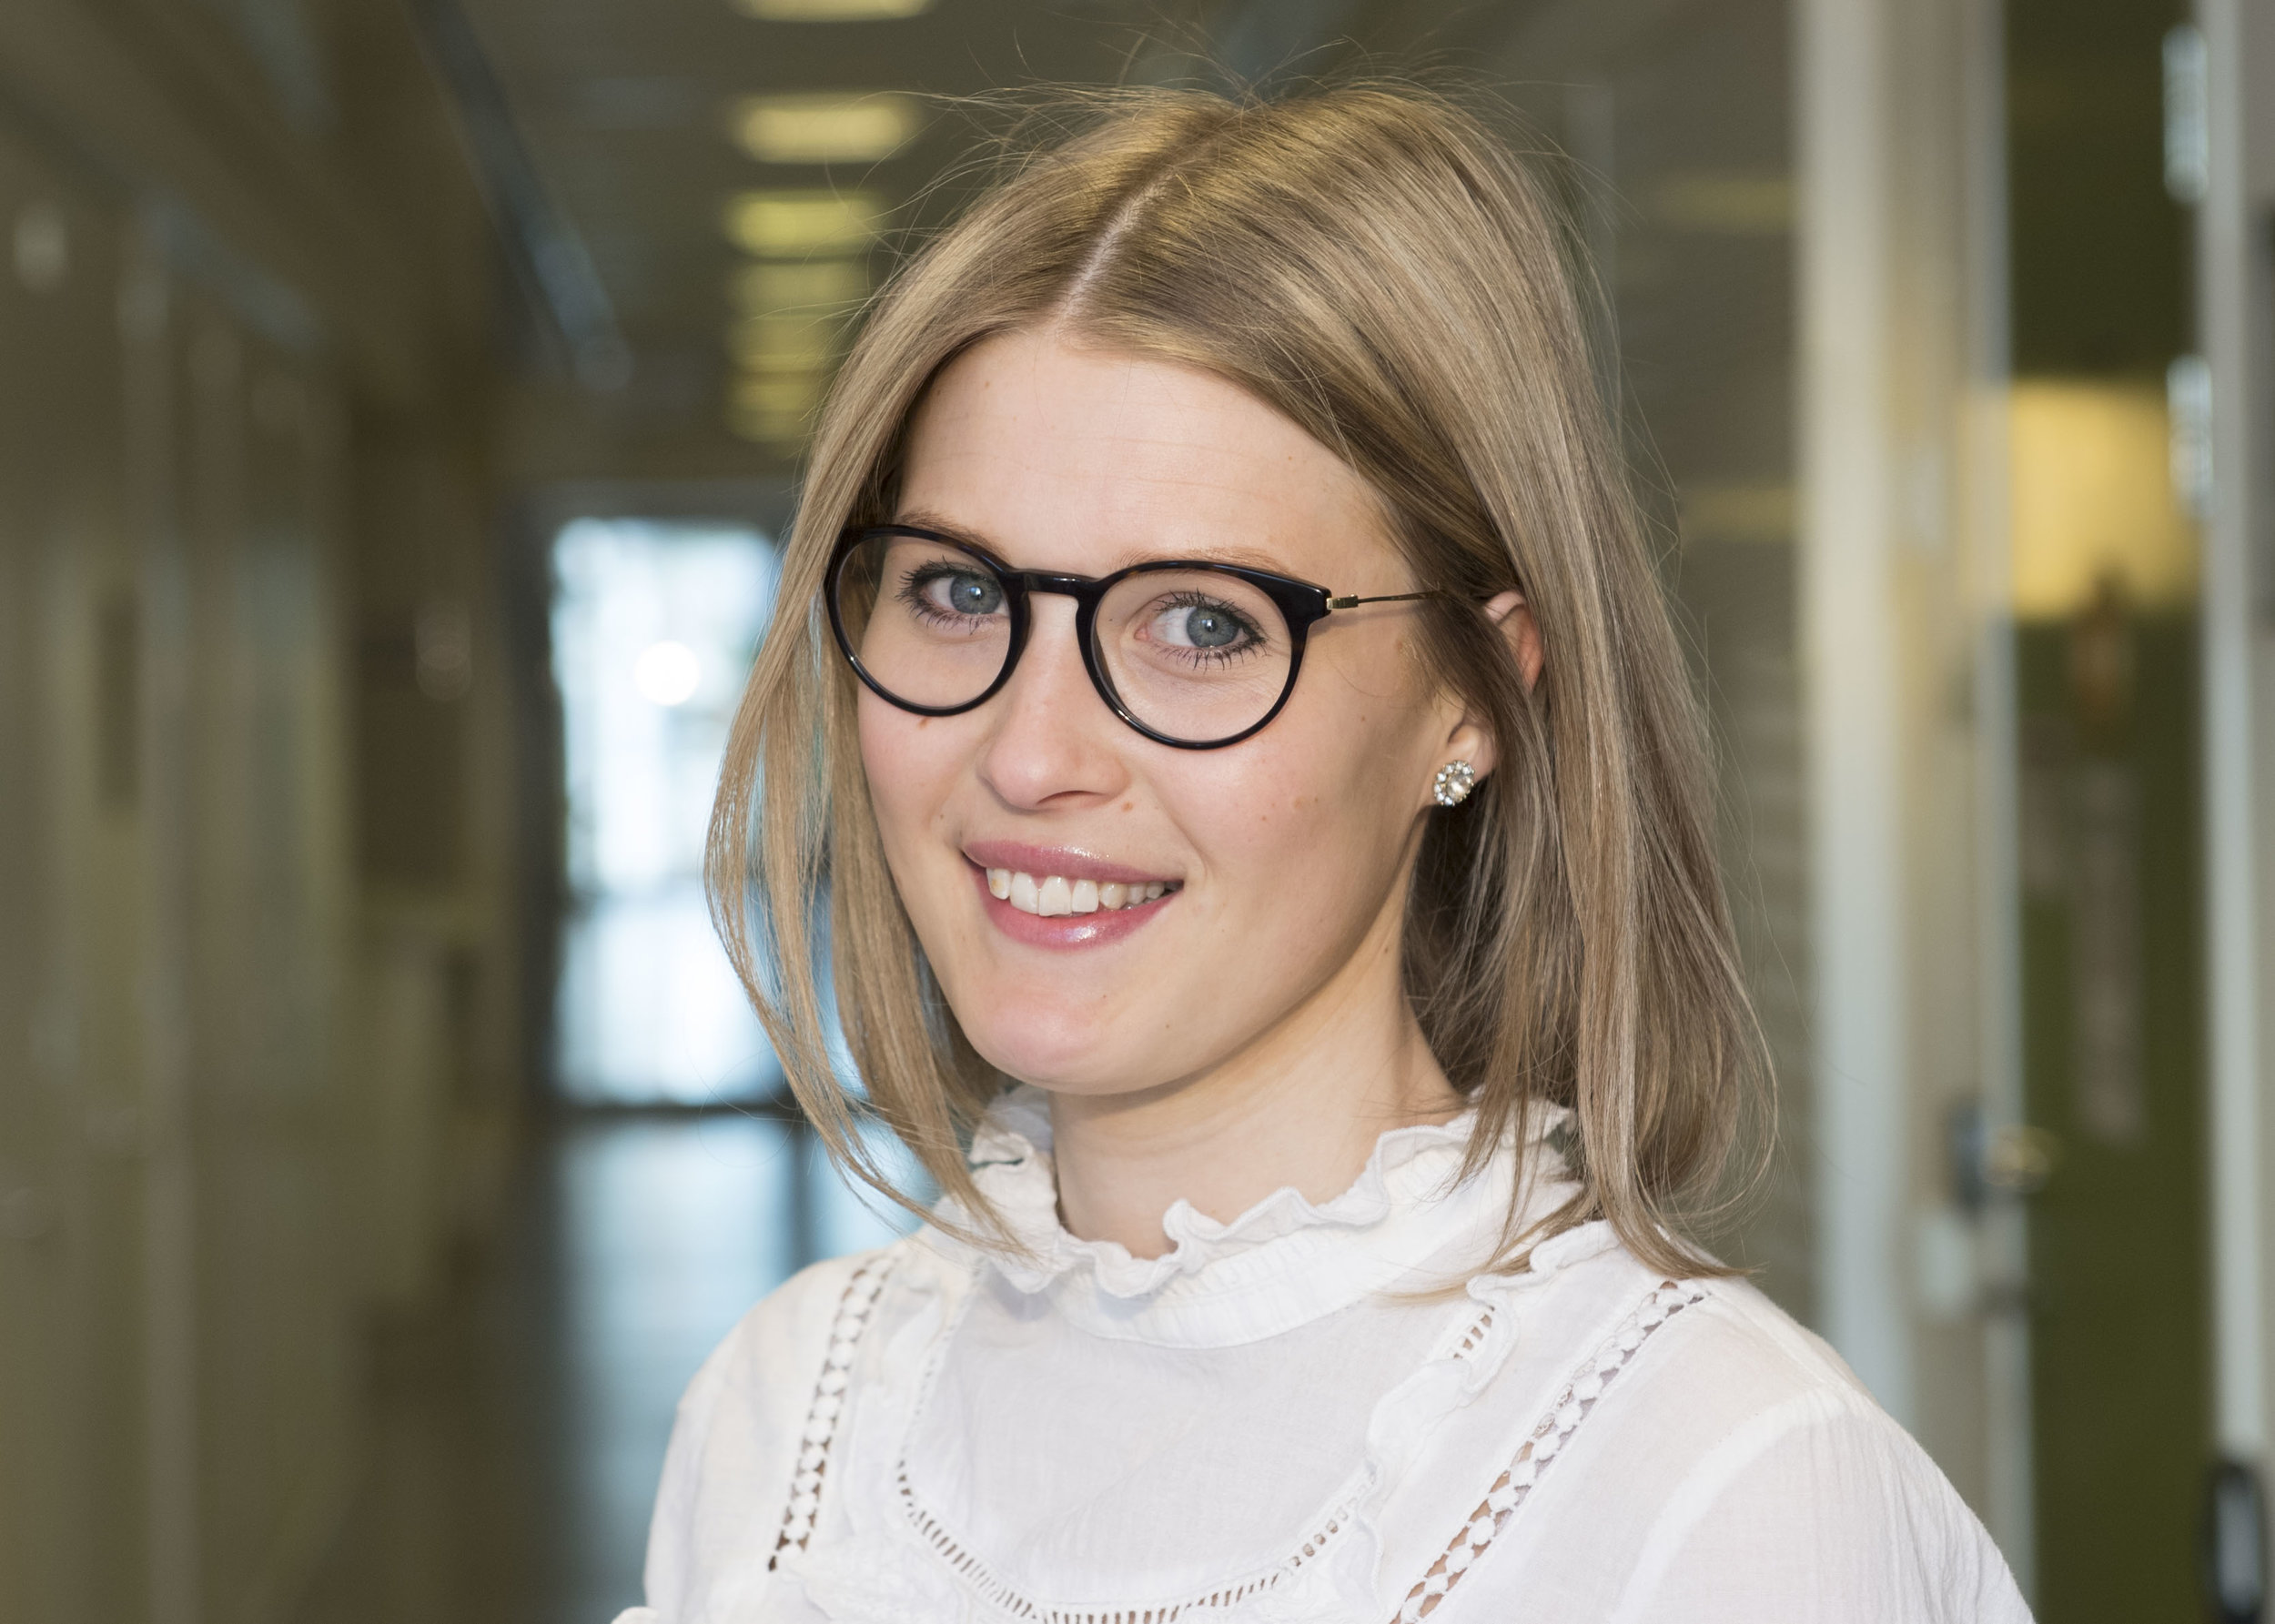 - Amanda EkdahlMD studentThesis student and research assistant in a research project that investigates surgeons attitudes towards non-specific treatment effects and placebo in surgery.Contact: amanda.ekdahl@stud.ki.se